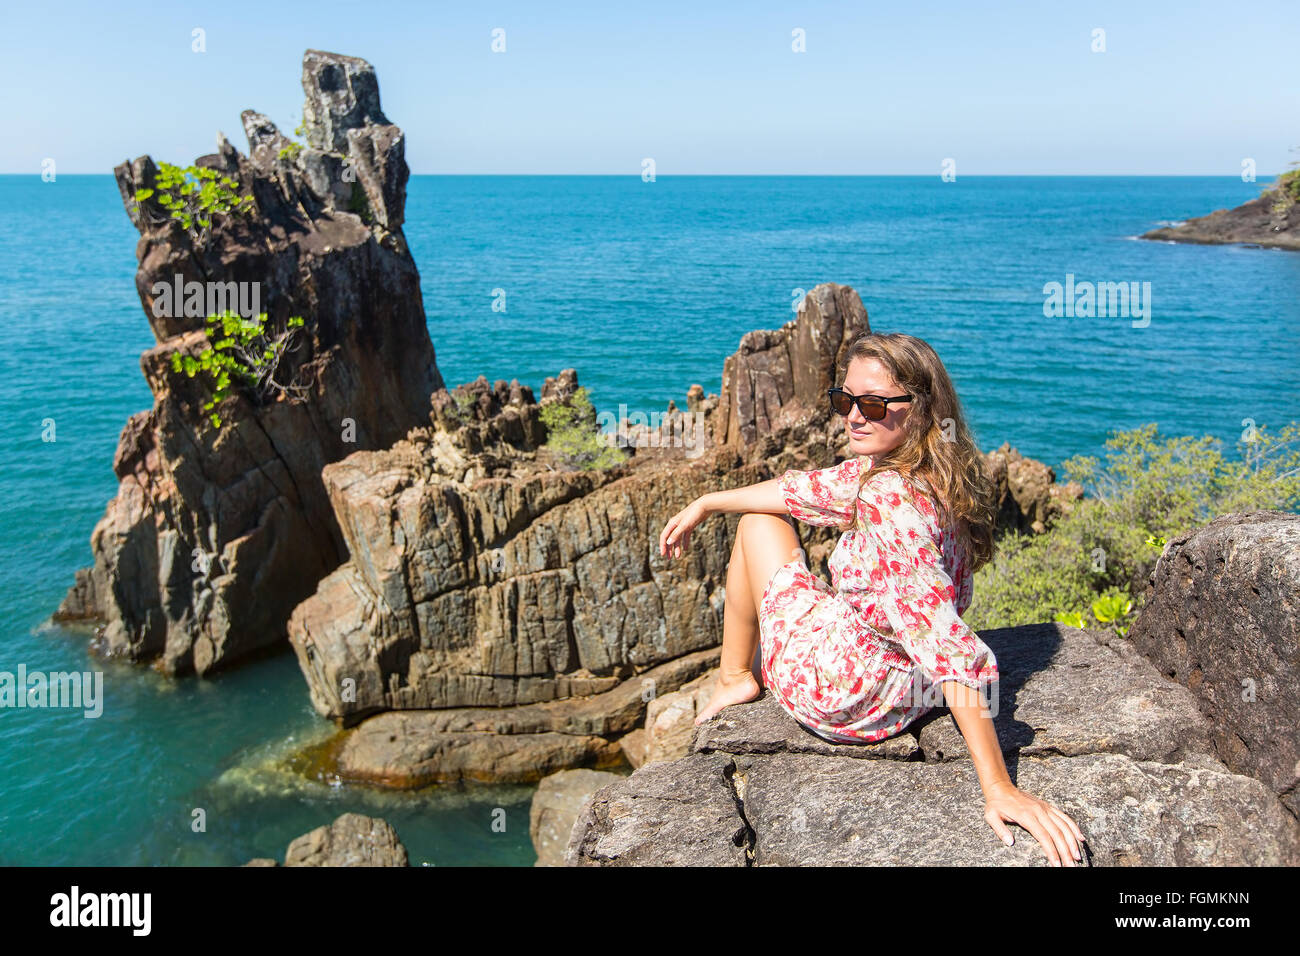 Young woman sitting on coastal rocks of Koh Chang island in Thailand. - Stock Image